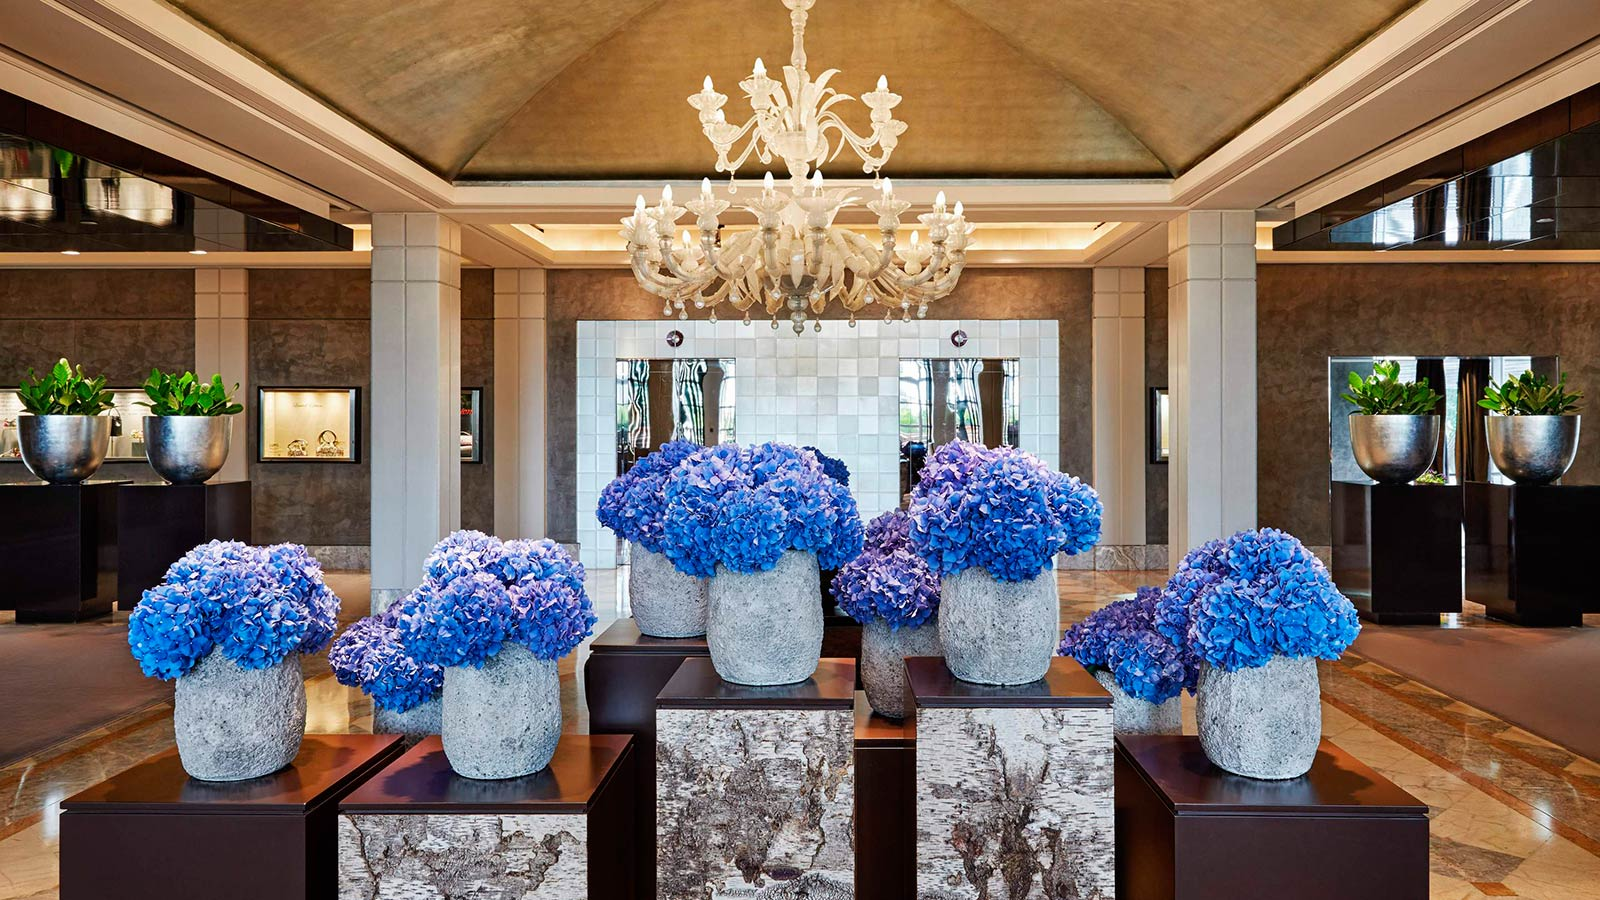 Lobby with flowers by Donna Stain